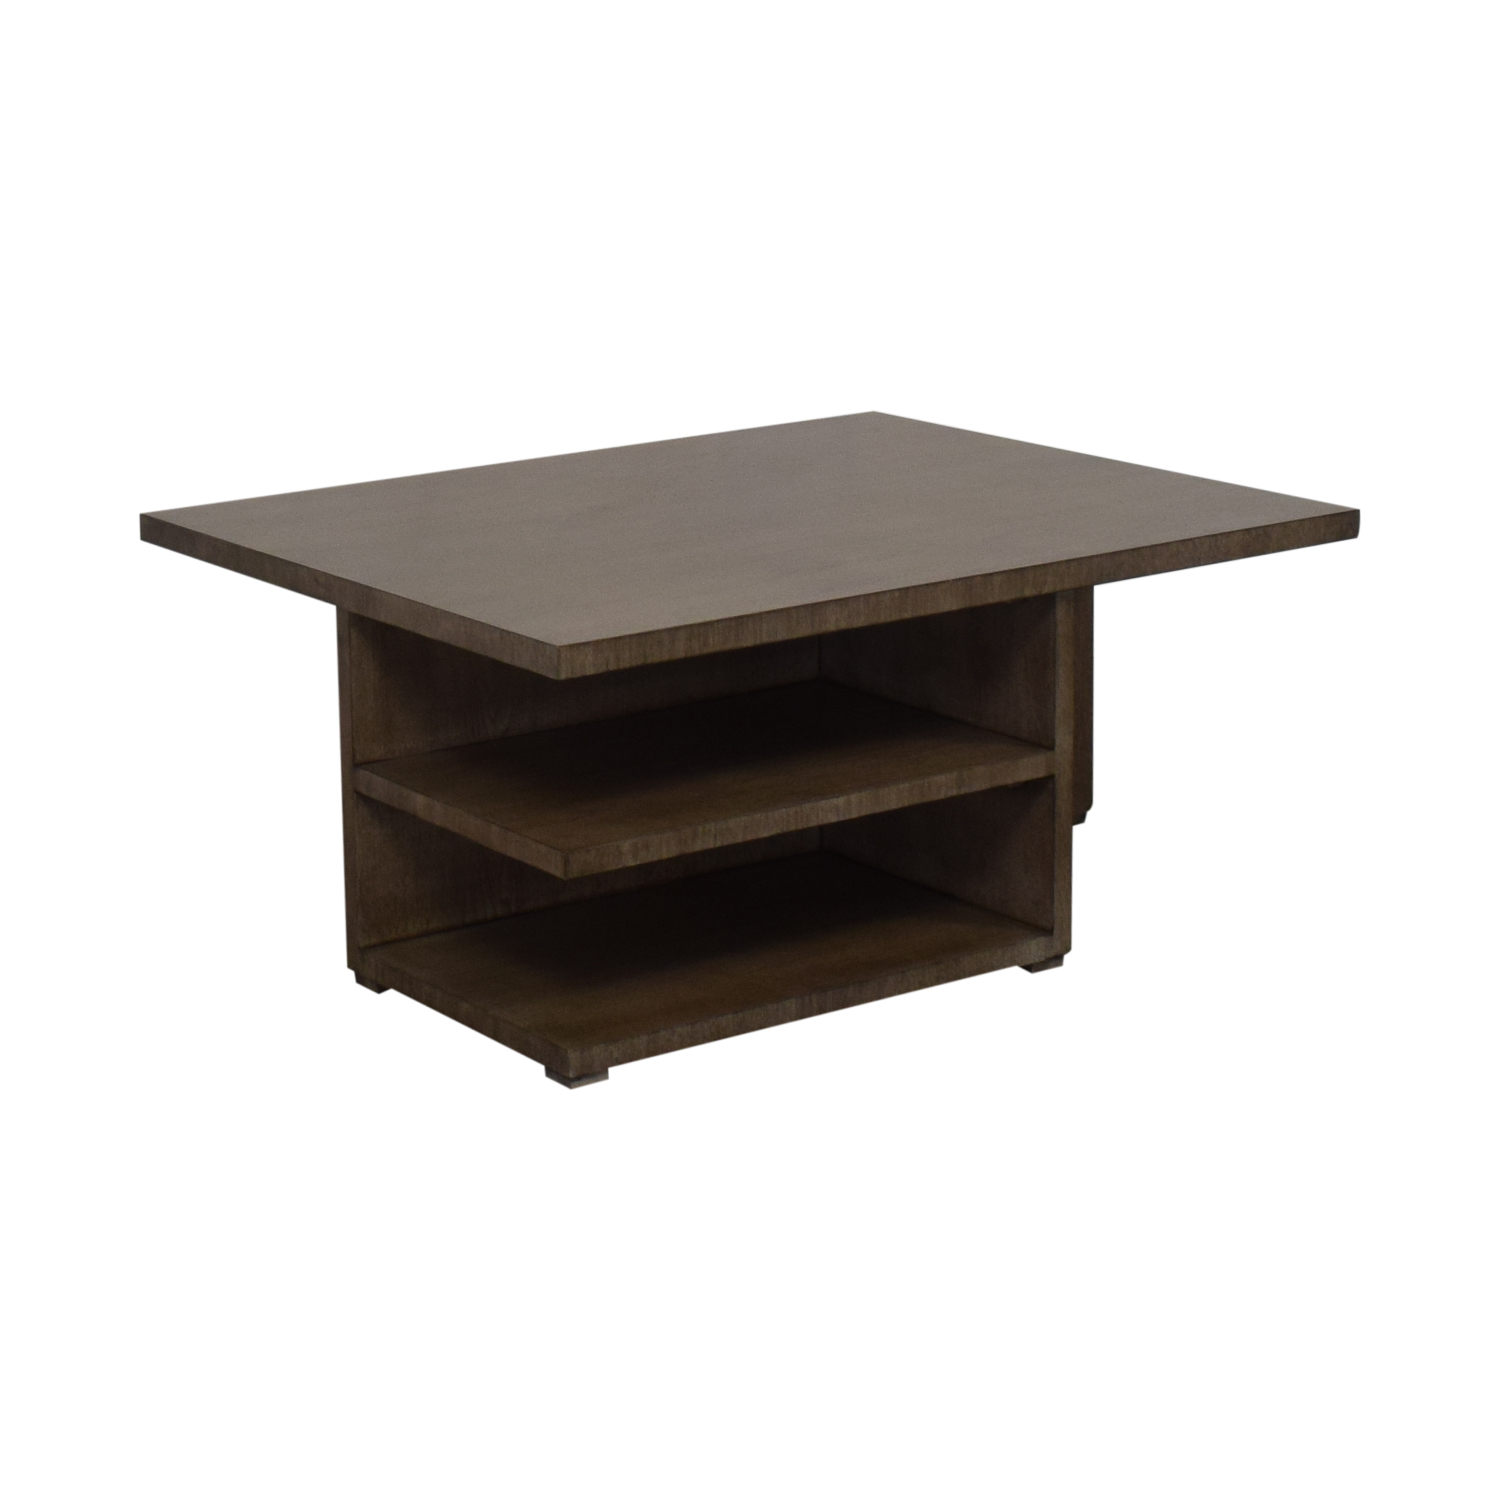 71% OFF   CTH Sherrill Occasional Furniture CTH Sherrill Occasional  Furniture Cocktail Table With Ottomans / Tables